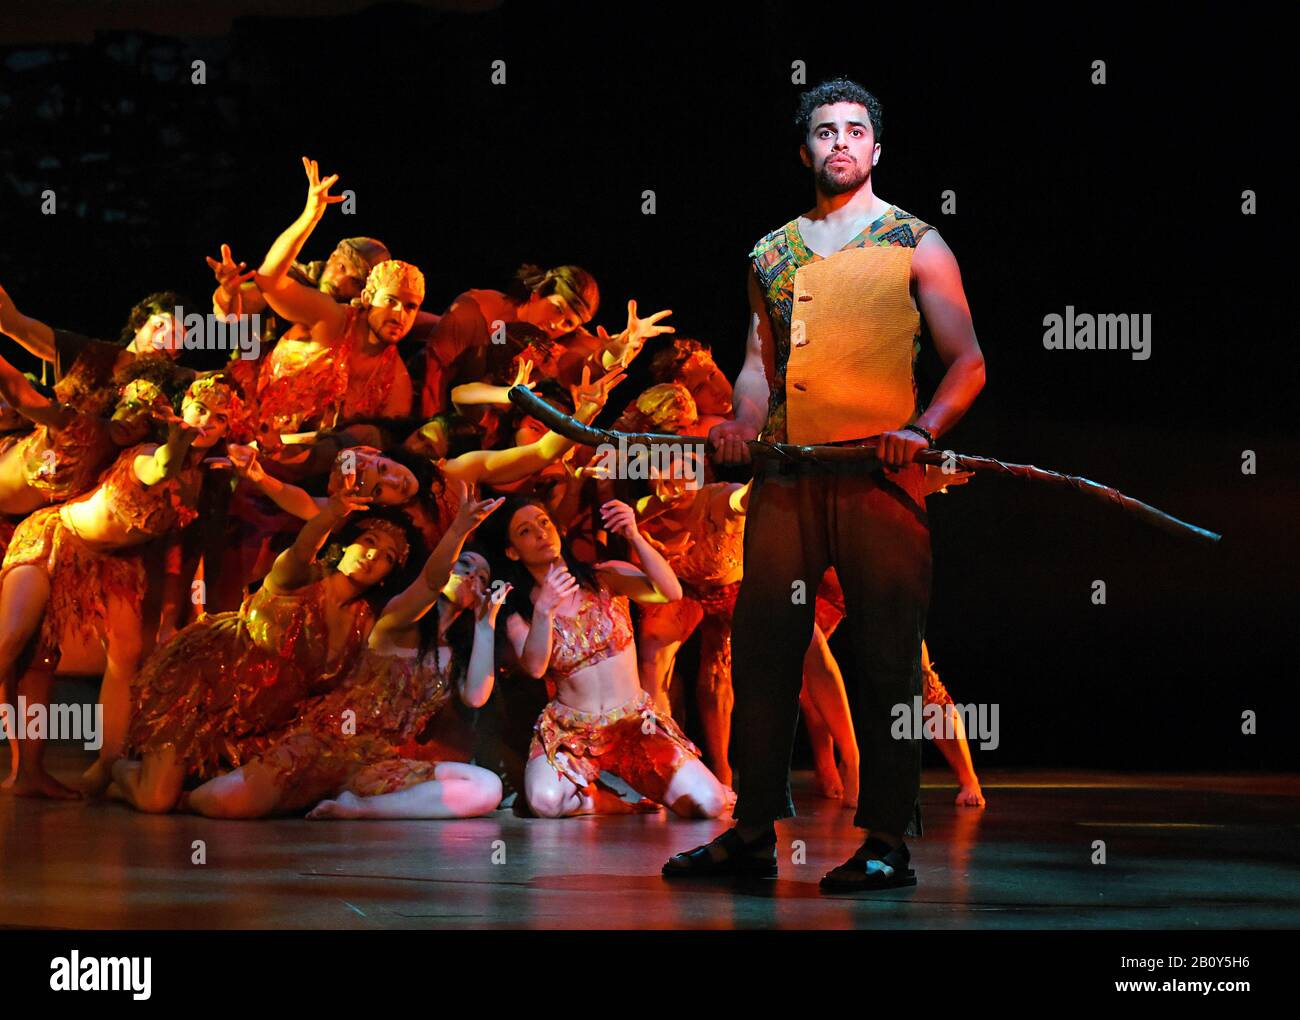 London, UK. 21st Feb, 2020. Luke Brady in a scene from 'Prince of Egypt' play at the Dominion Theatre, Tottenham Court Road in London. Credit: SOPA Images Limited/Alamy Live News Stock Photo